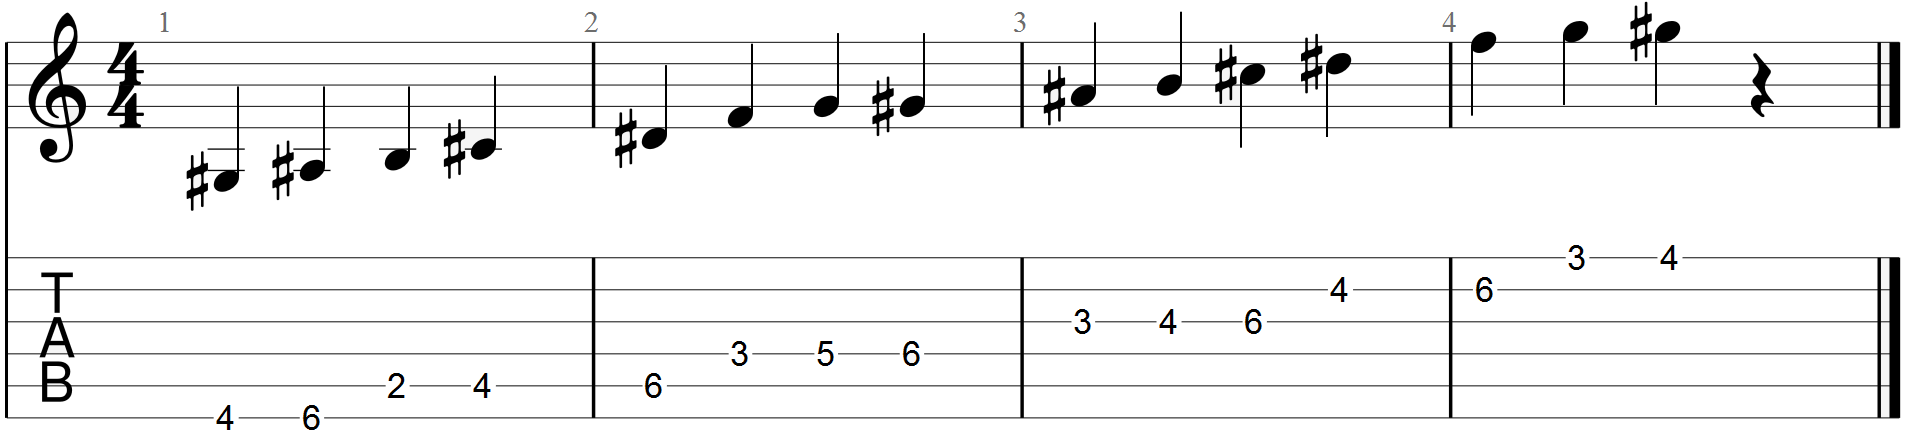 The Melodic Minor Guitar Scale Diagram